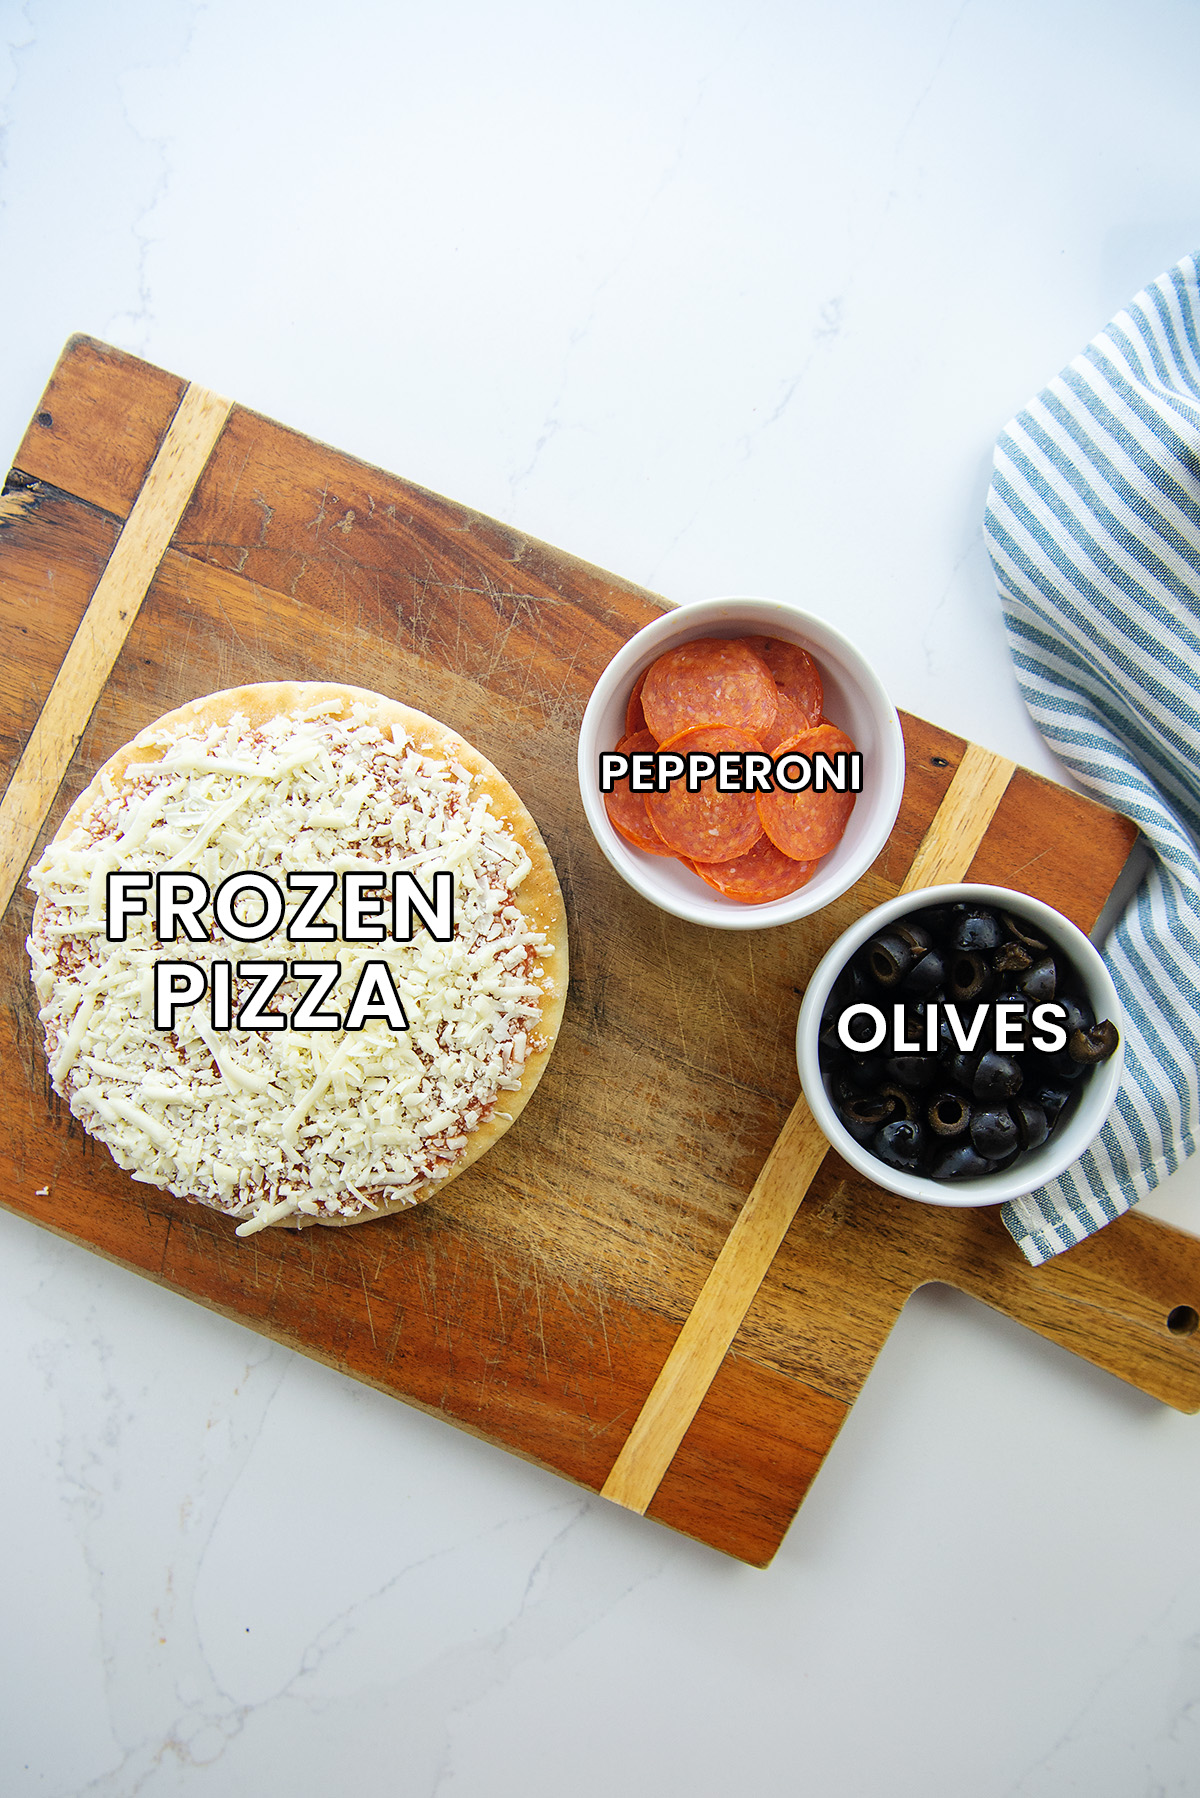 Frozen pizza, pepperoni, and black olives on a wooden cutting board.